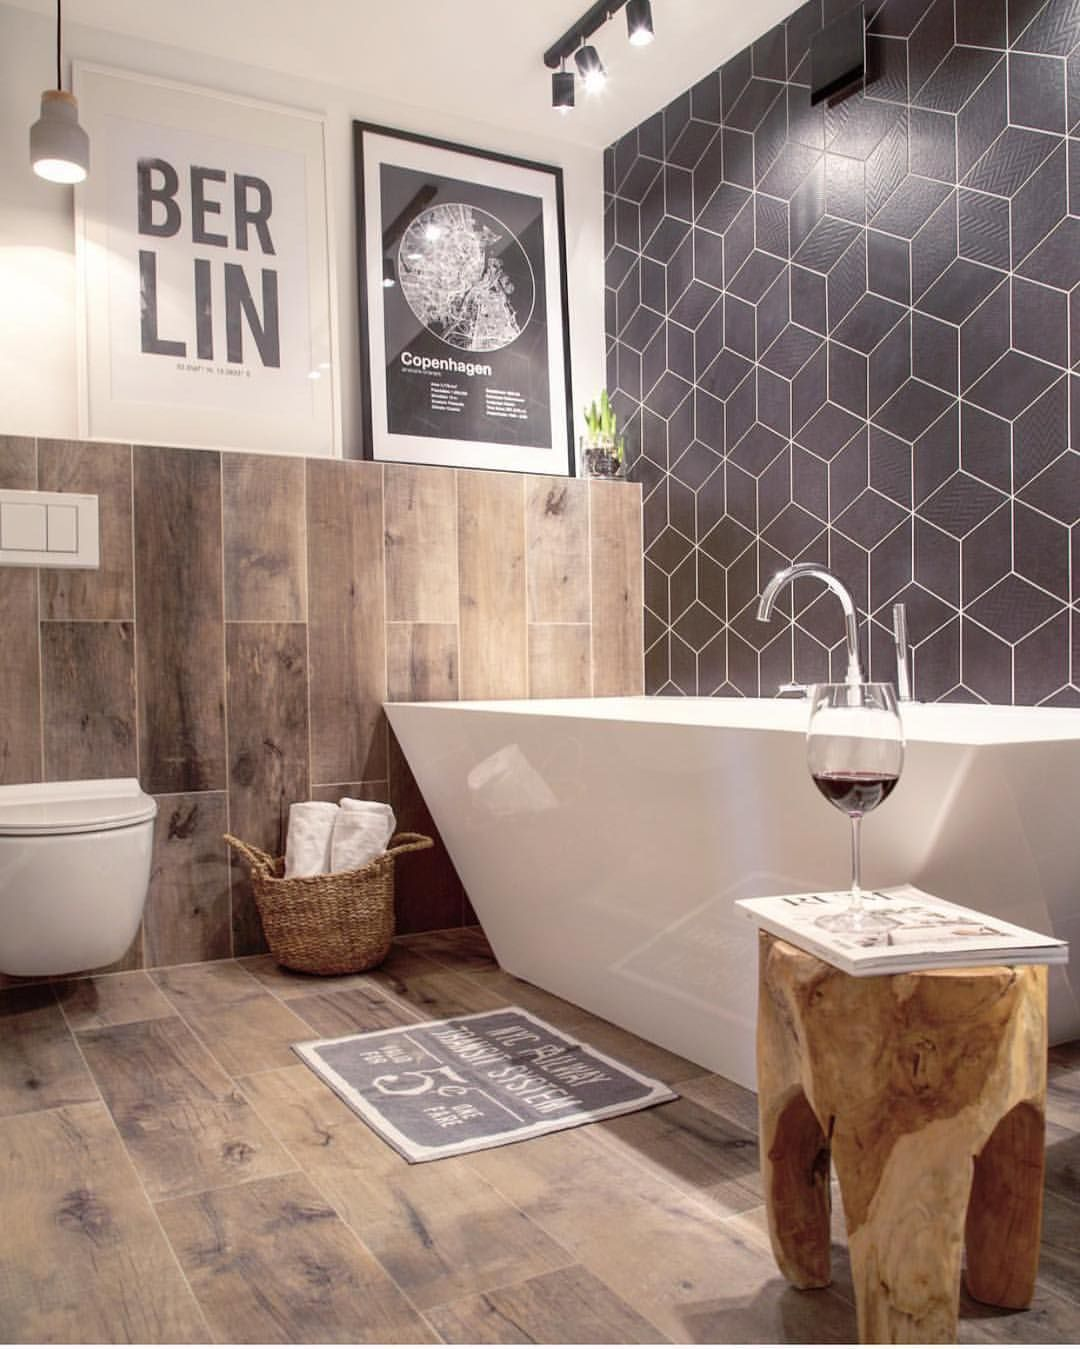 25 The Best Bathroom Tile Ideas And Design For 2018 This Modern Bathroom Makes Use Of Beautiful Tile Bathroom Bathroom Tile Designs Farmhouse Bathroom Decor